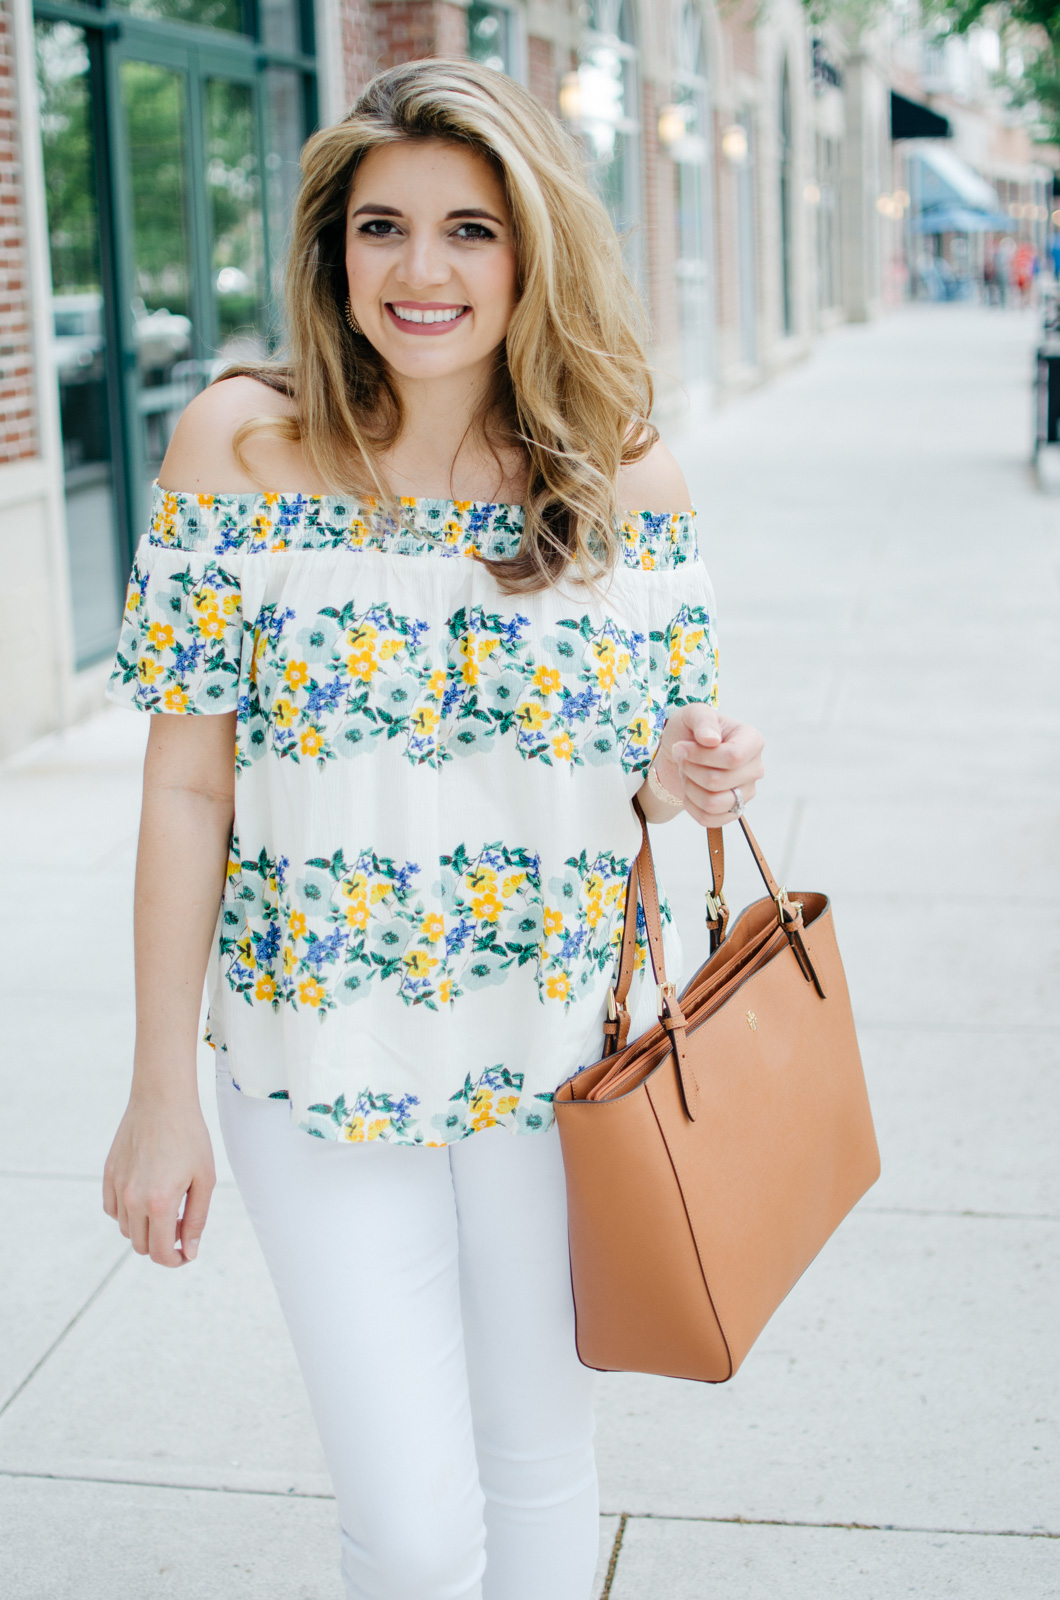 all white spring outfit - off shoulder top outfit | For more spring weekend outfits, head to bylaurenm.com